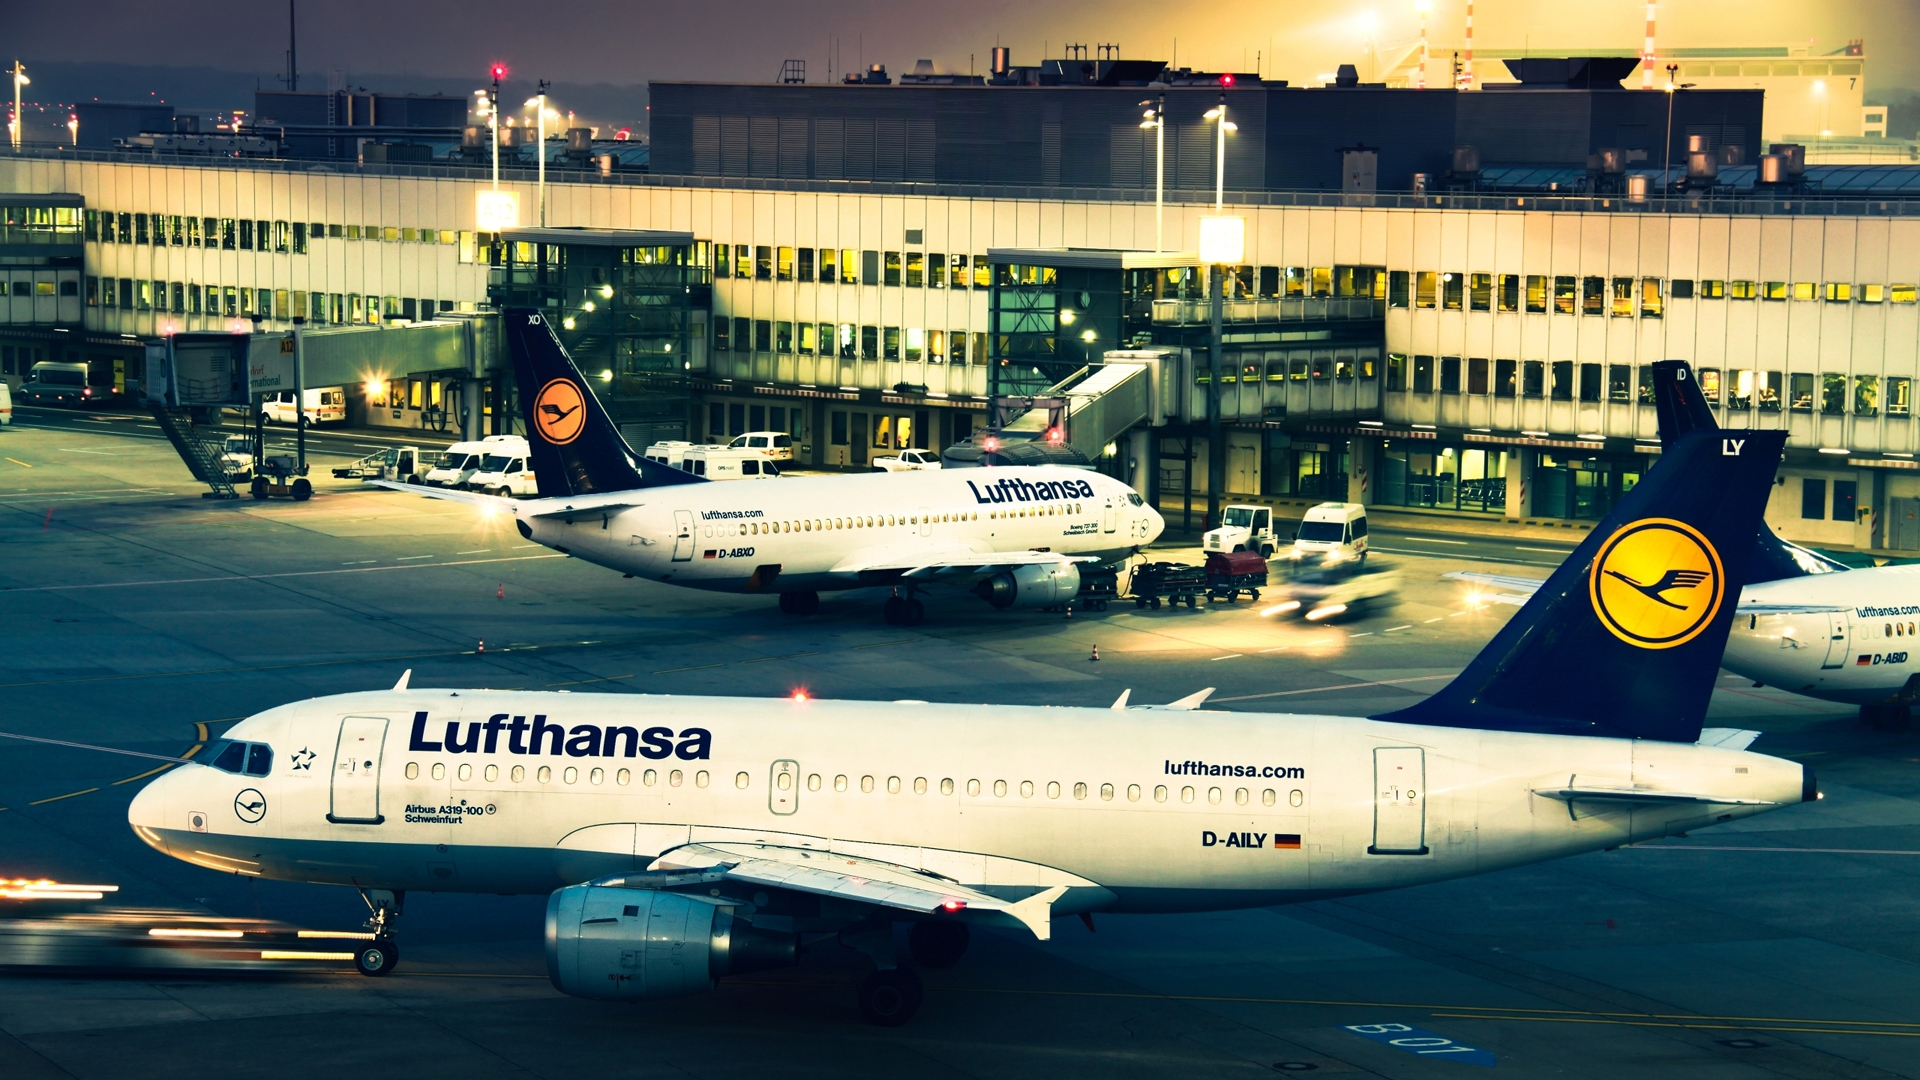 Lufthansa-A-1920x1080-Need-iPhone-S-Plus-Background-for-IPhoneSPlus-Fol-wallpaper-wpc9206925